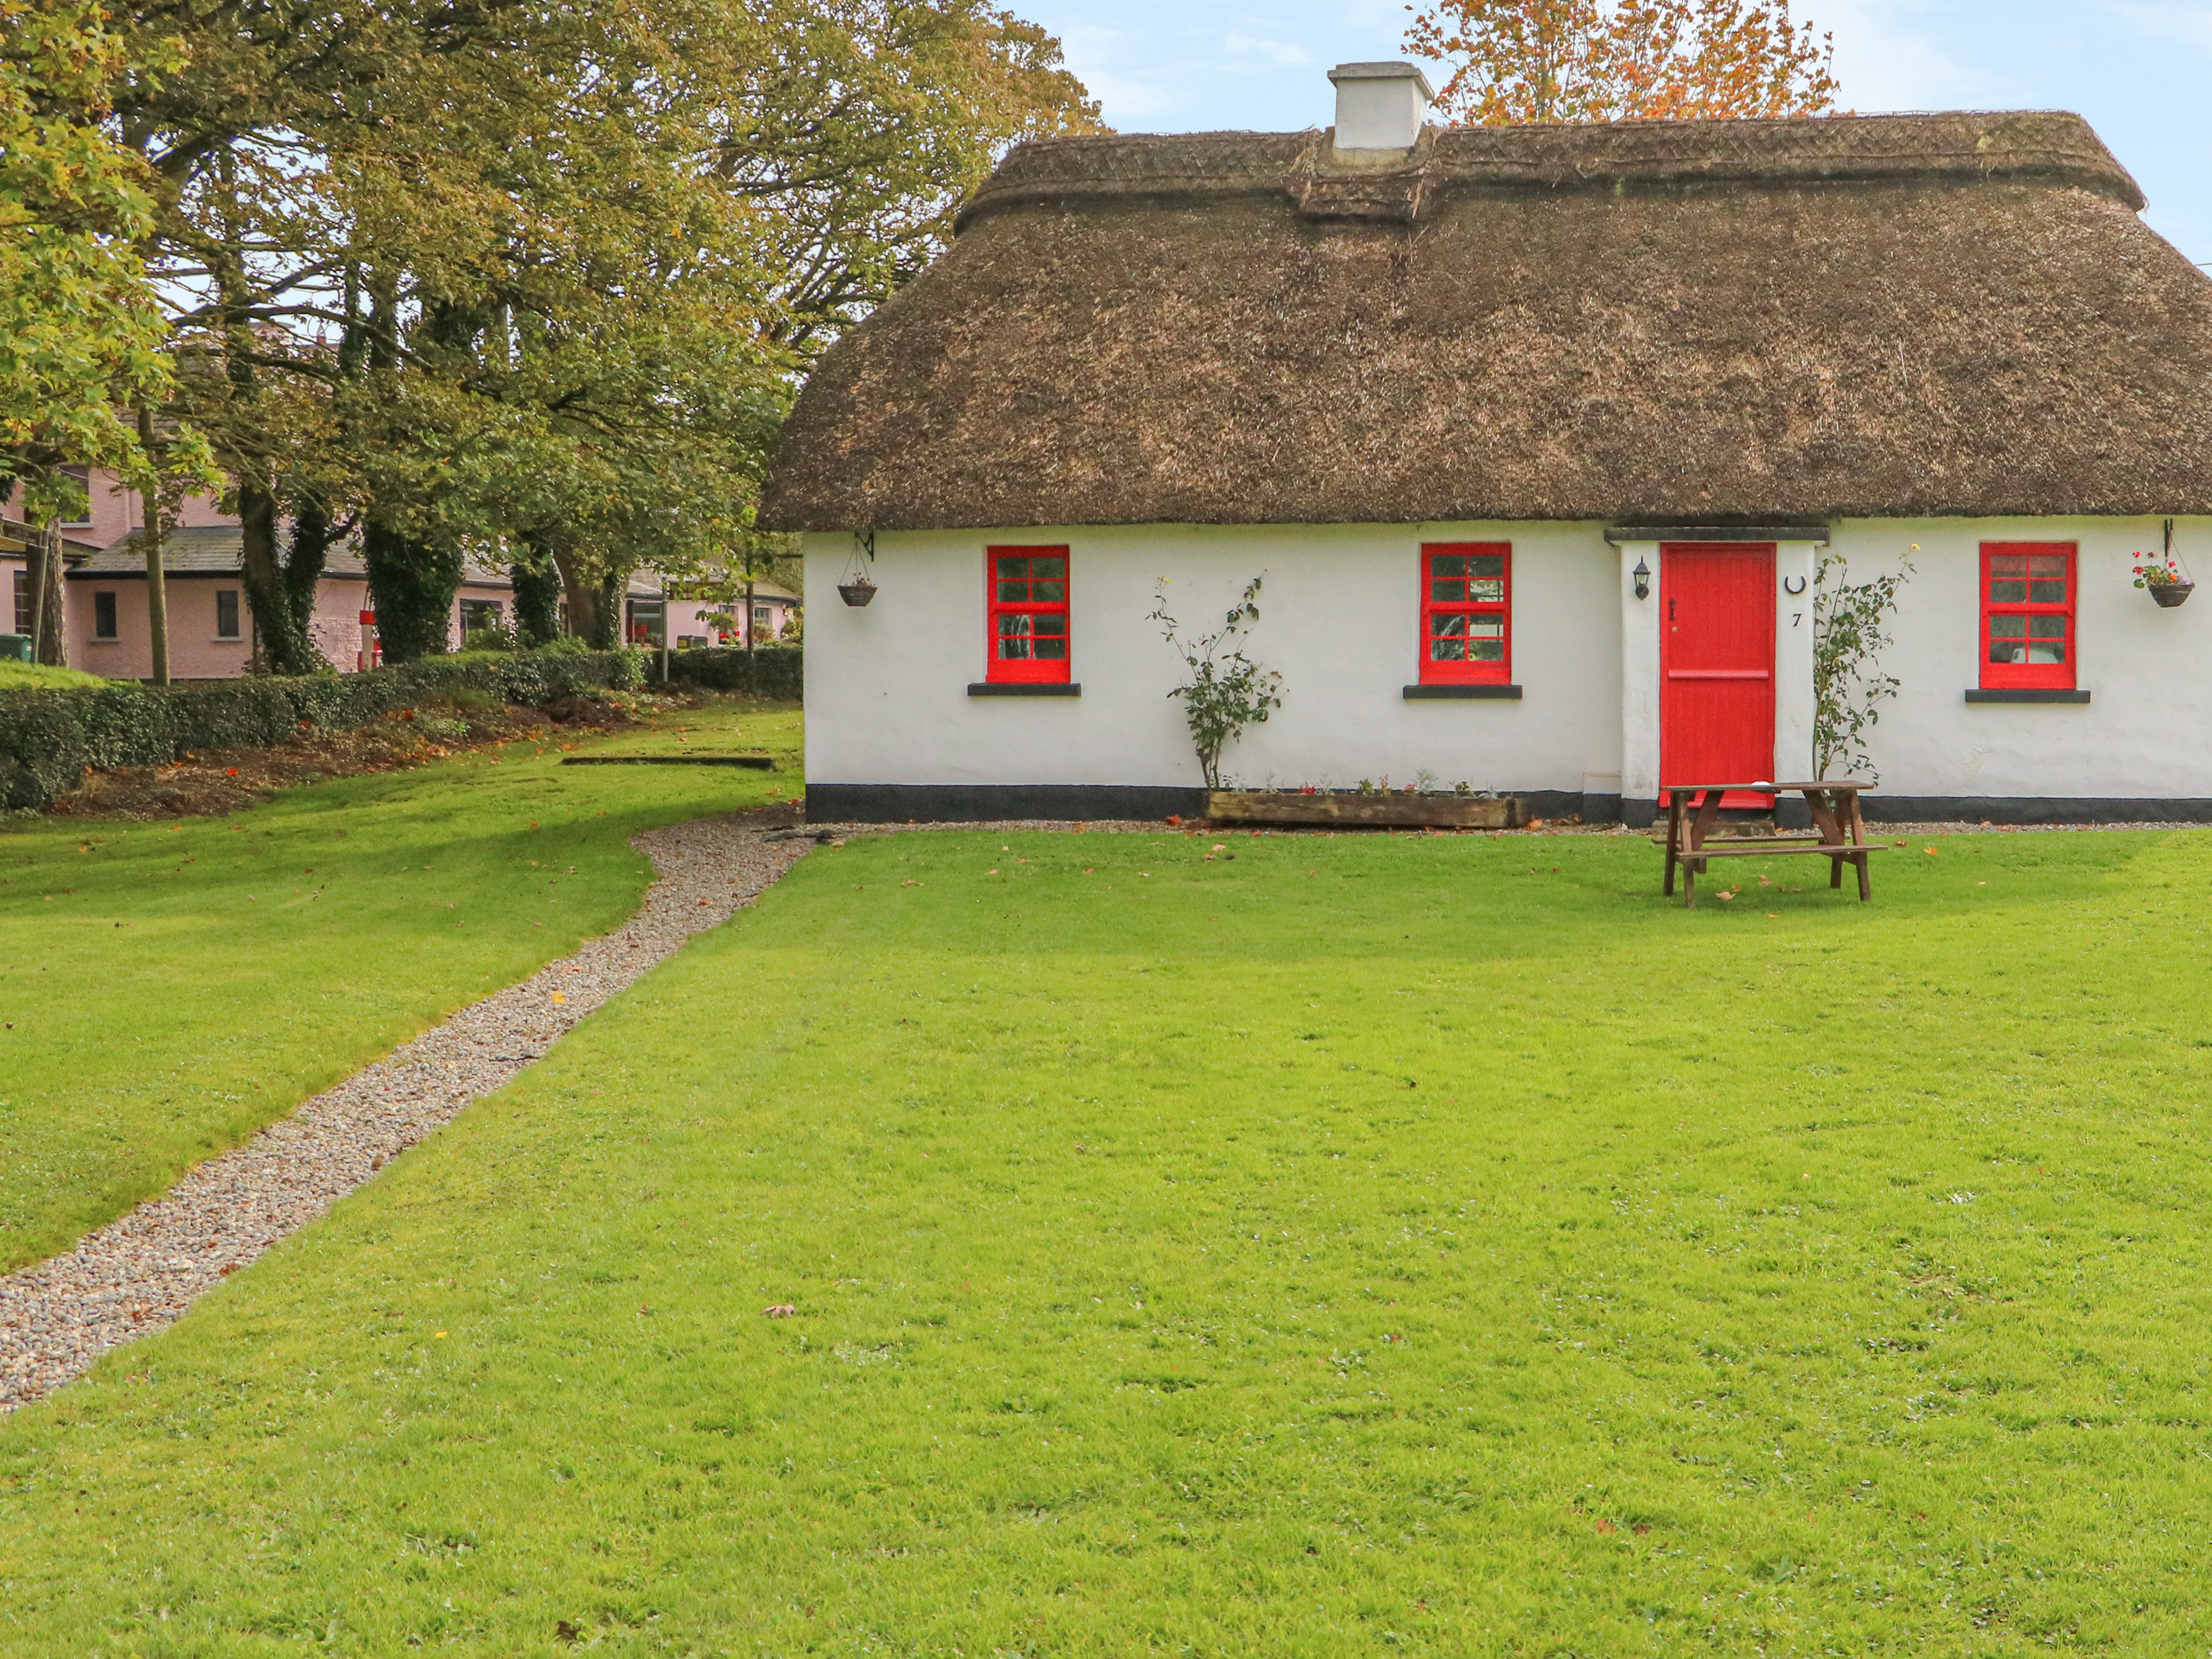 No. 9 Lough Derg Thatched Cottages, County Tipperary